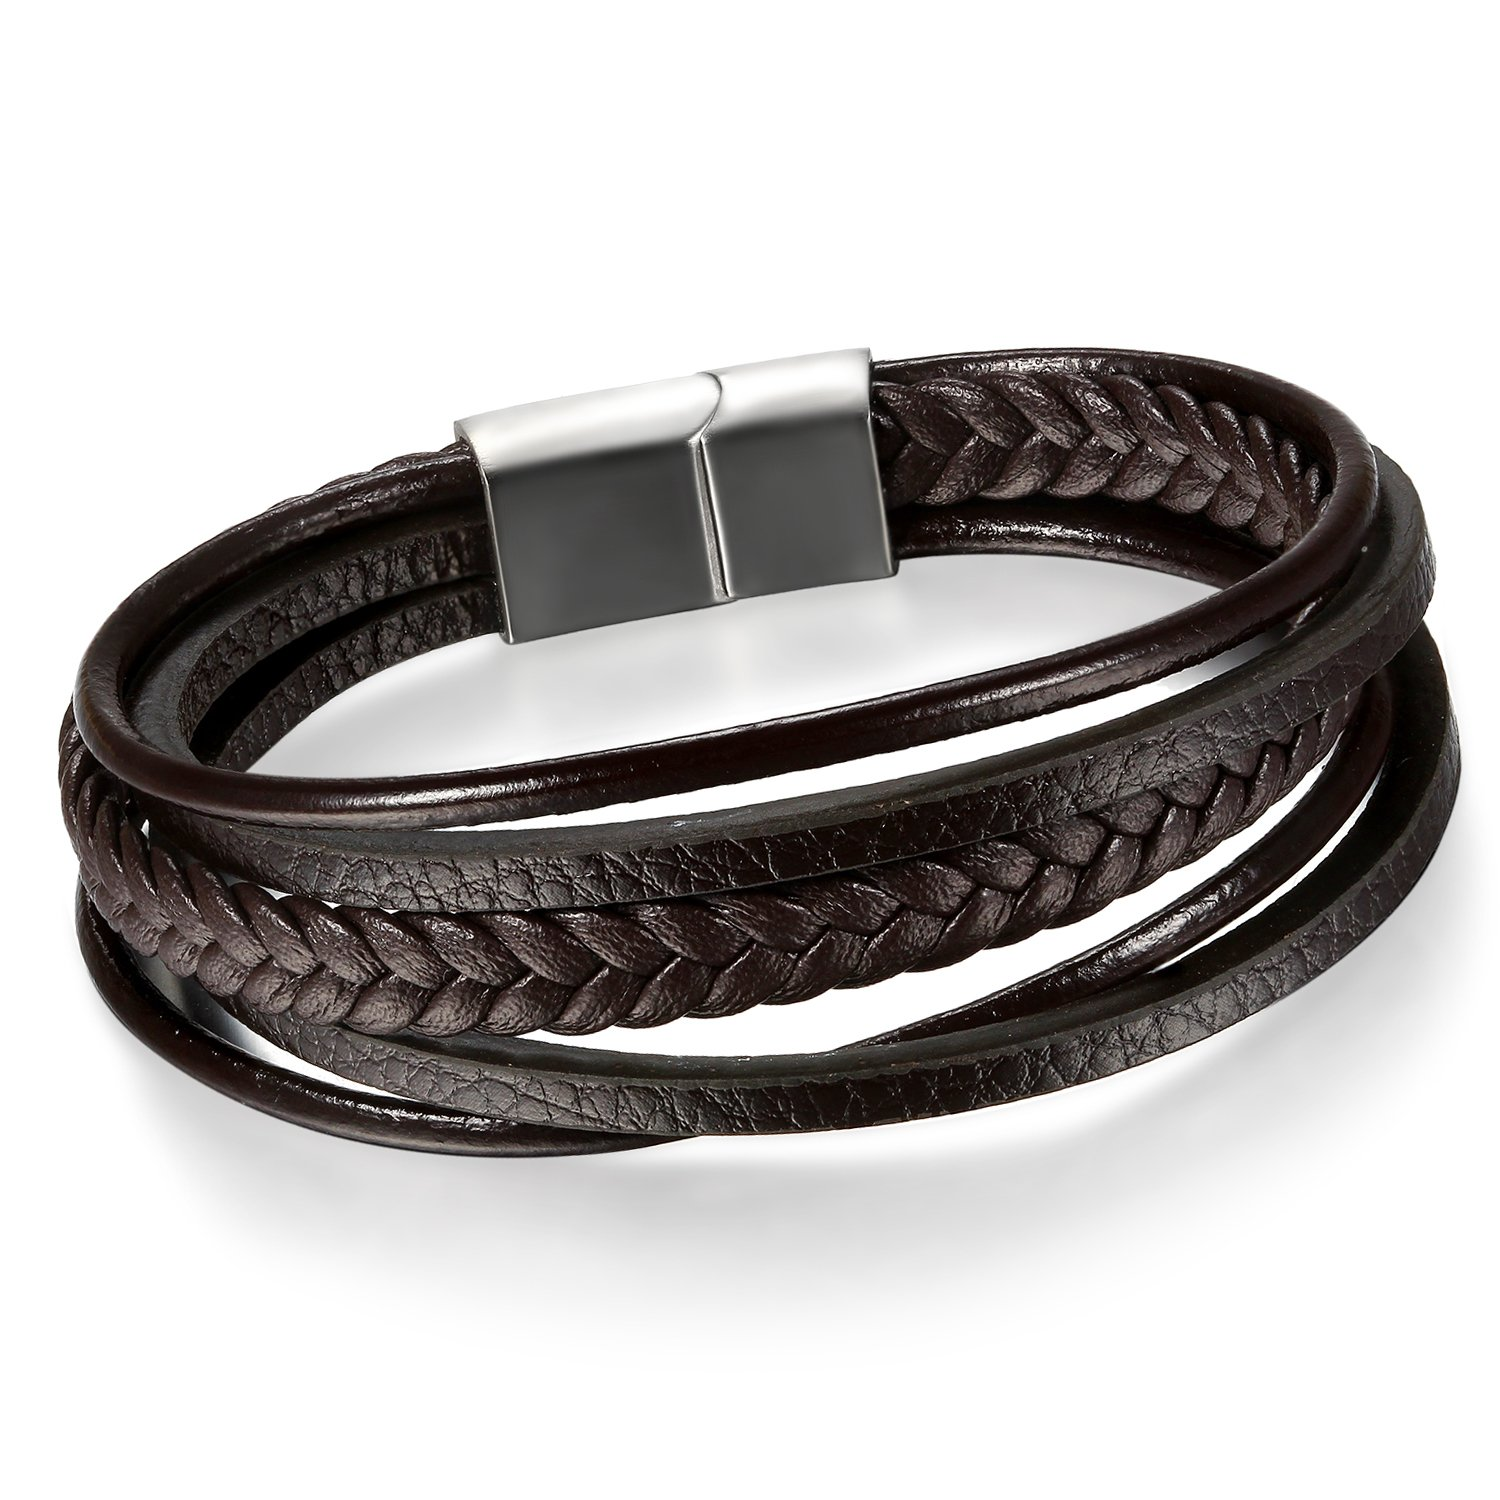 Cupimatch Men's Stainless Steel Magnetic Clasp Multi-Layer Braided Leather Rope Bracelet Cuff 8.5 C006033